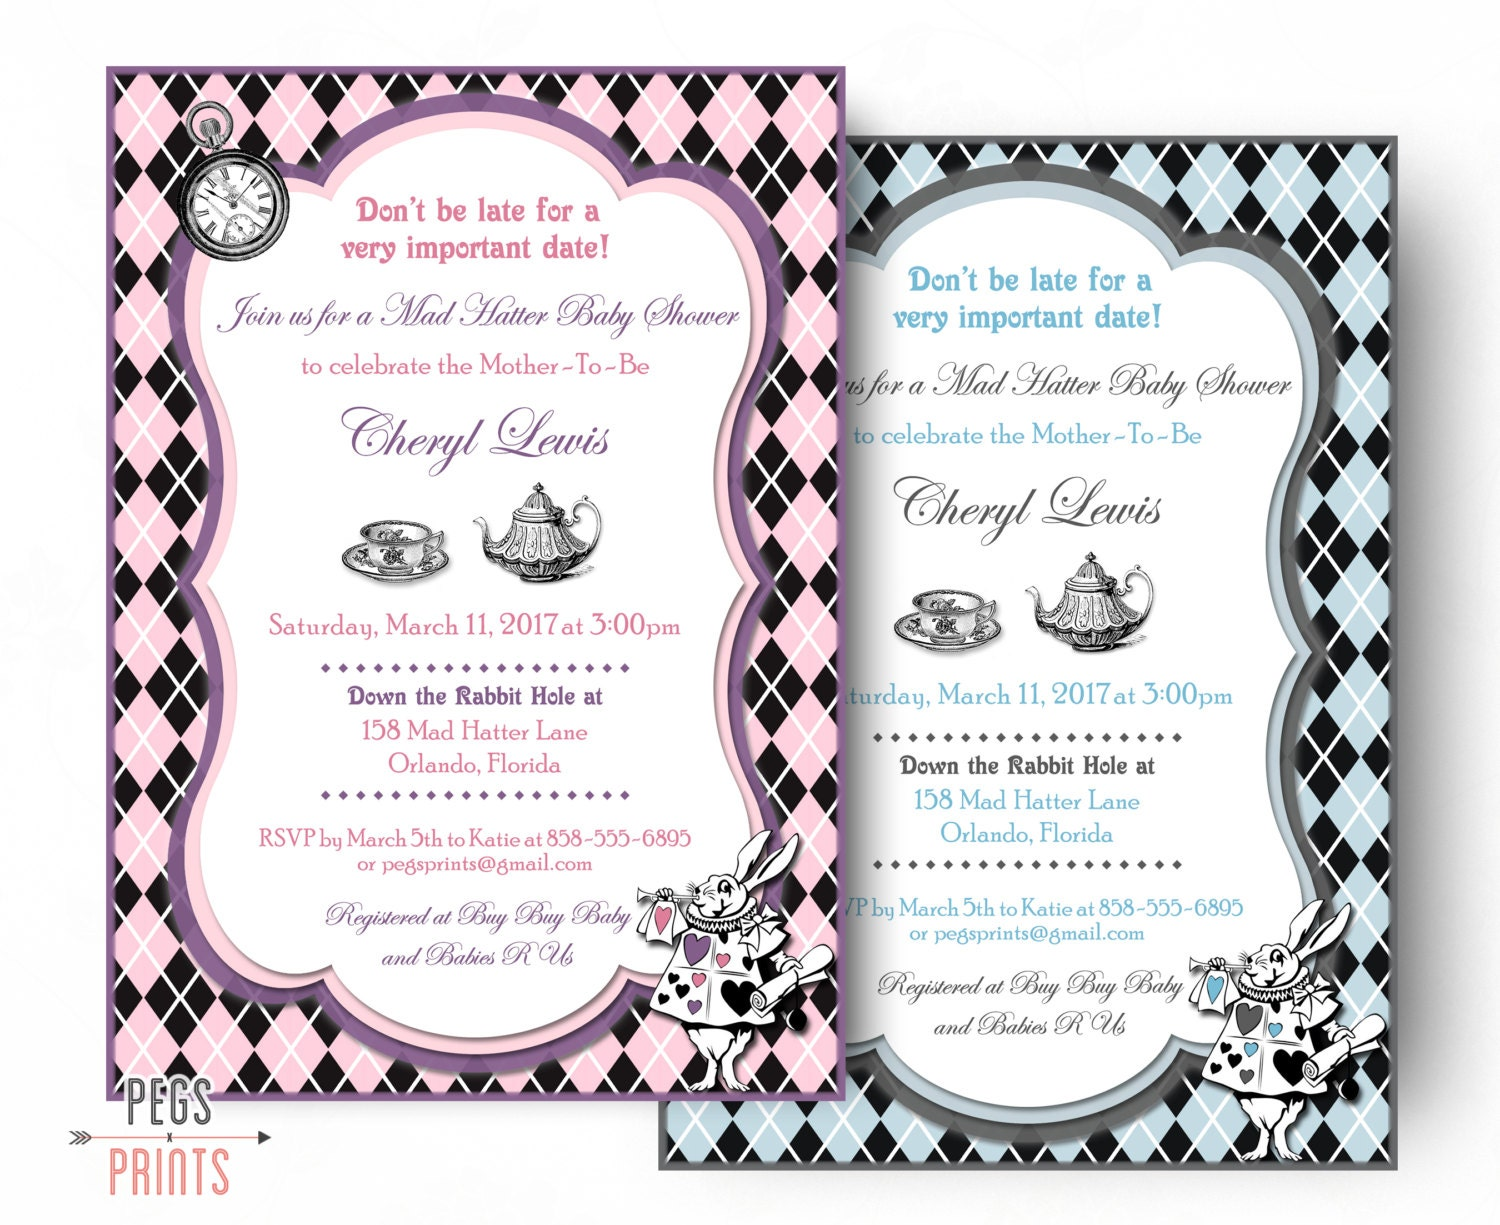 Mad Hatter Baby Shower Invitation Printable Mad Hatter Baby